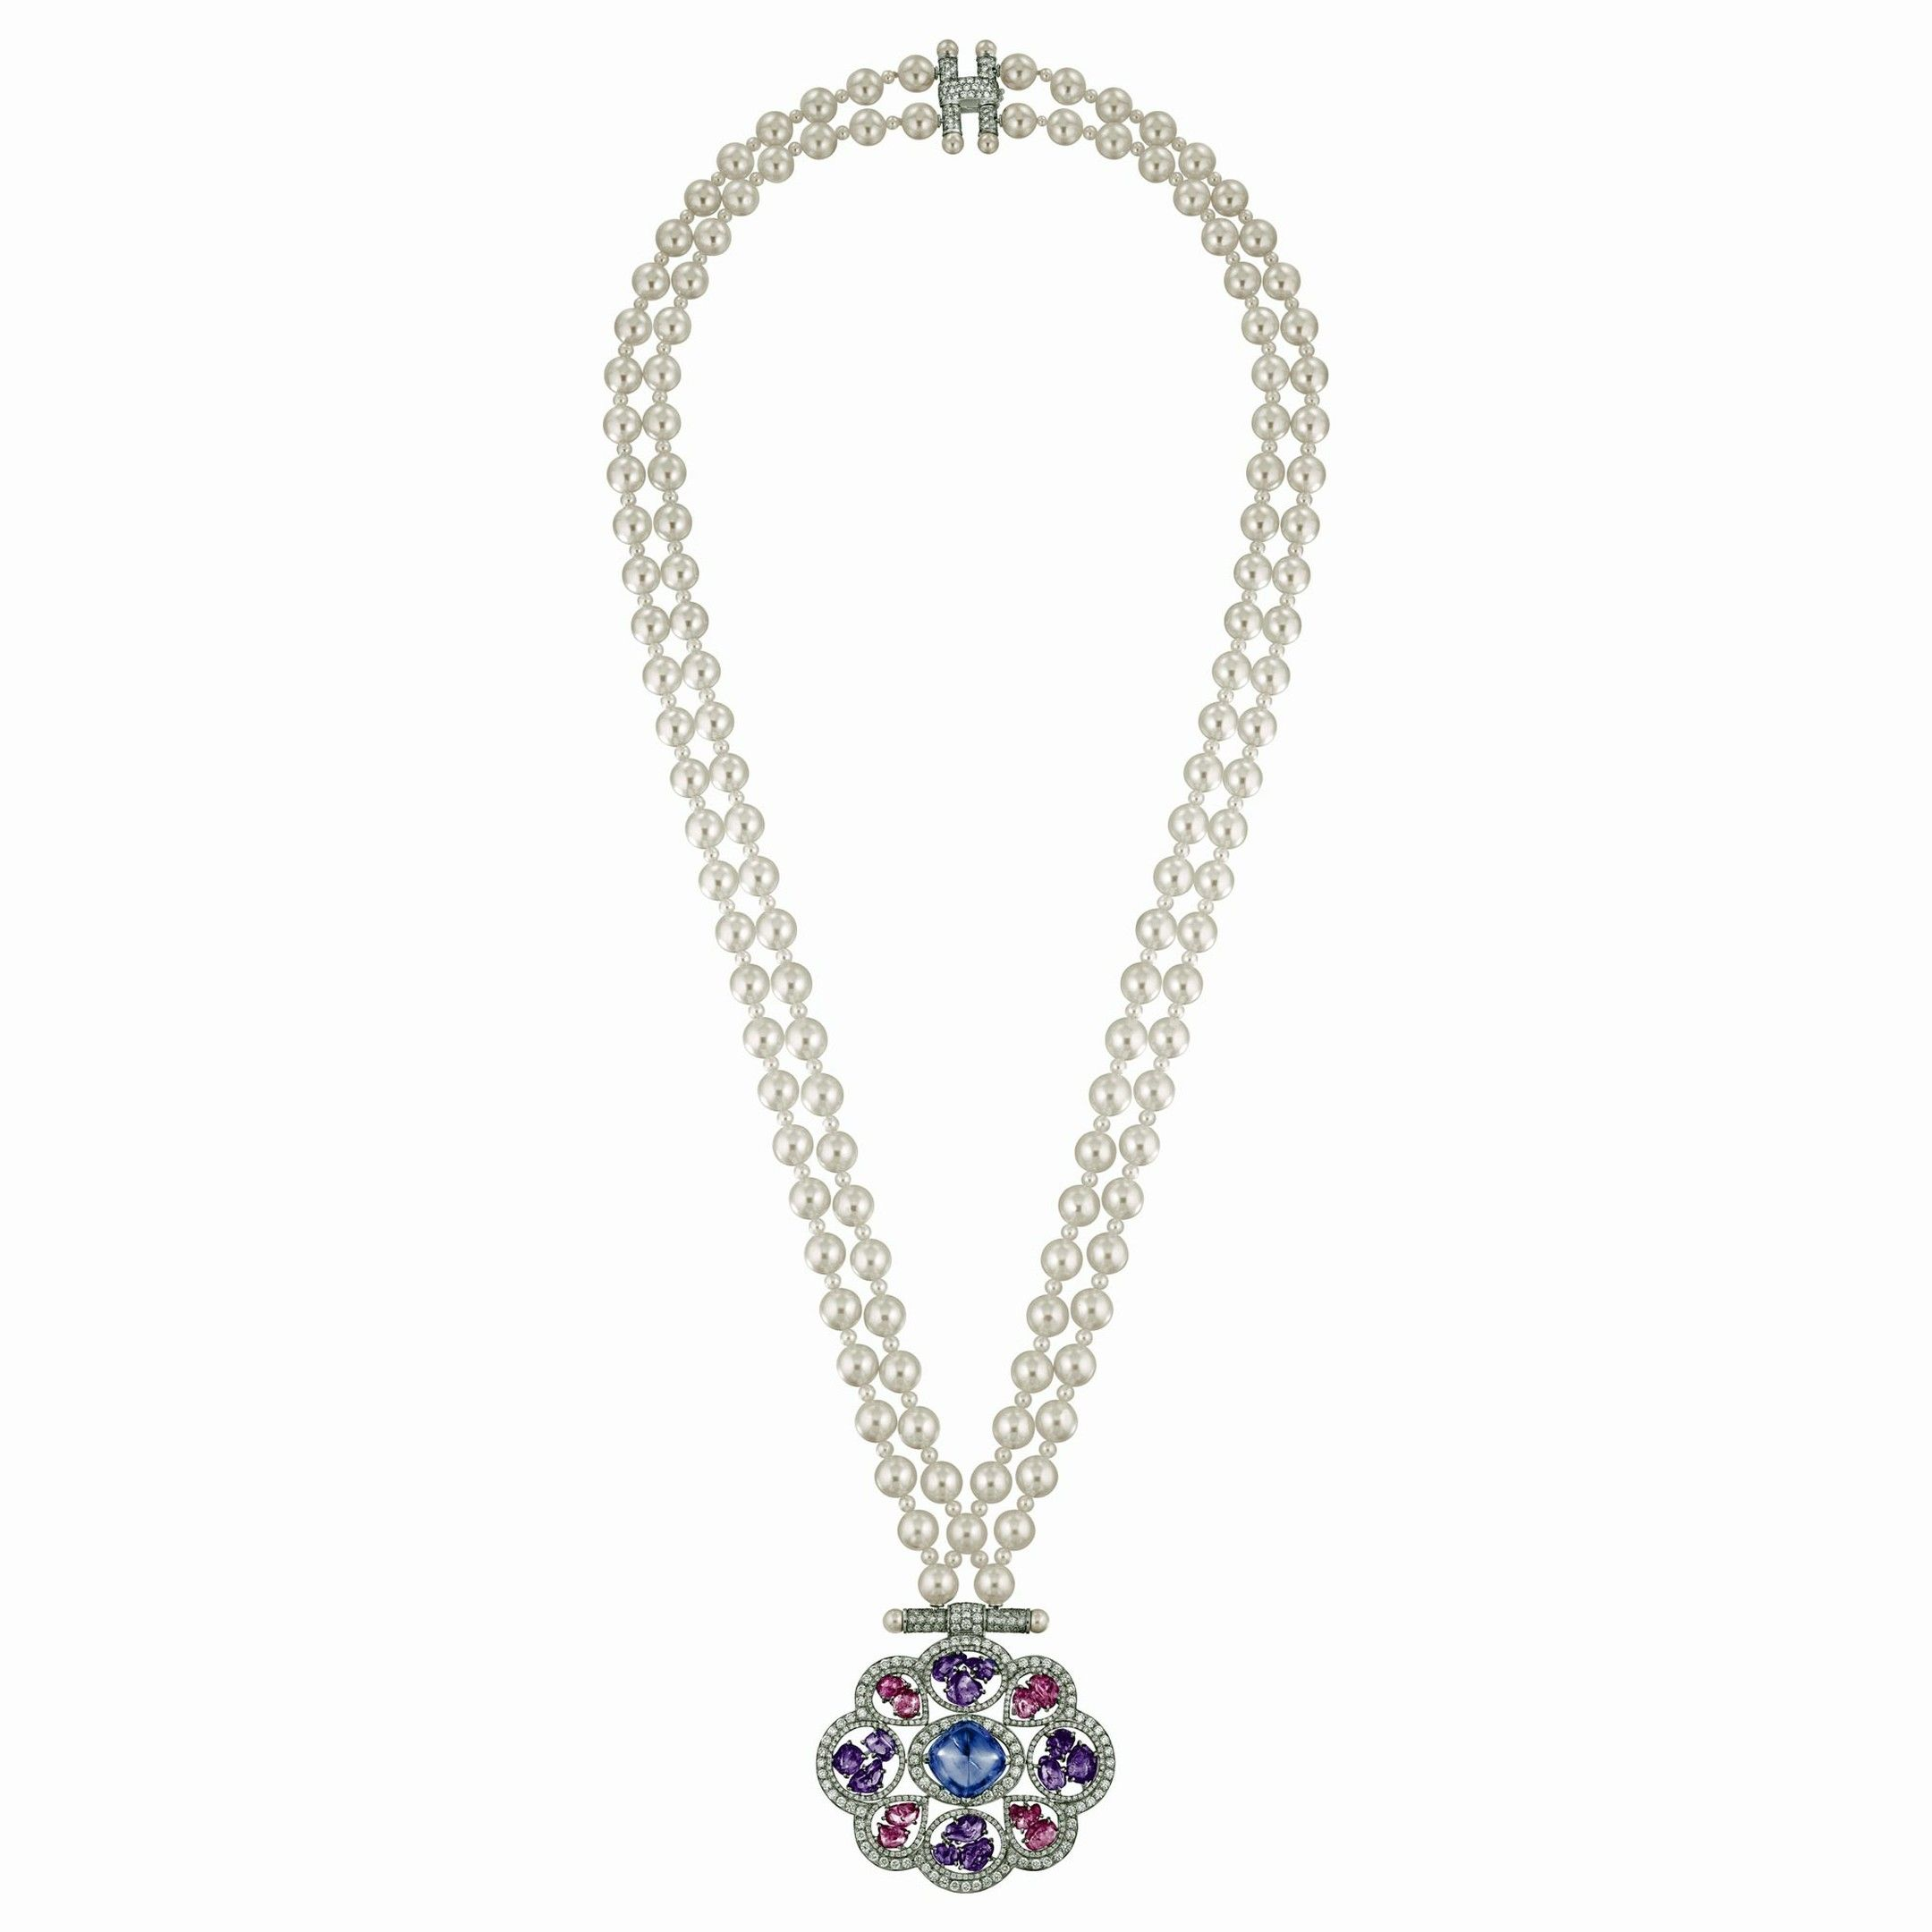 Chanel necklace from the Talisman collection in white gold with a sugar loaf-cut tanzanite, violet sapphires, brilliant-cut diamonds and Japanese cultured pearls.